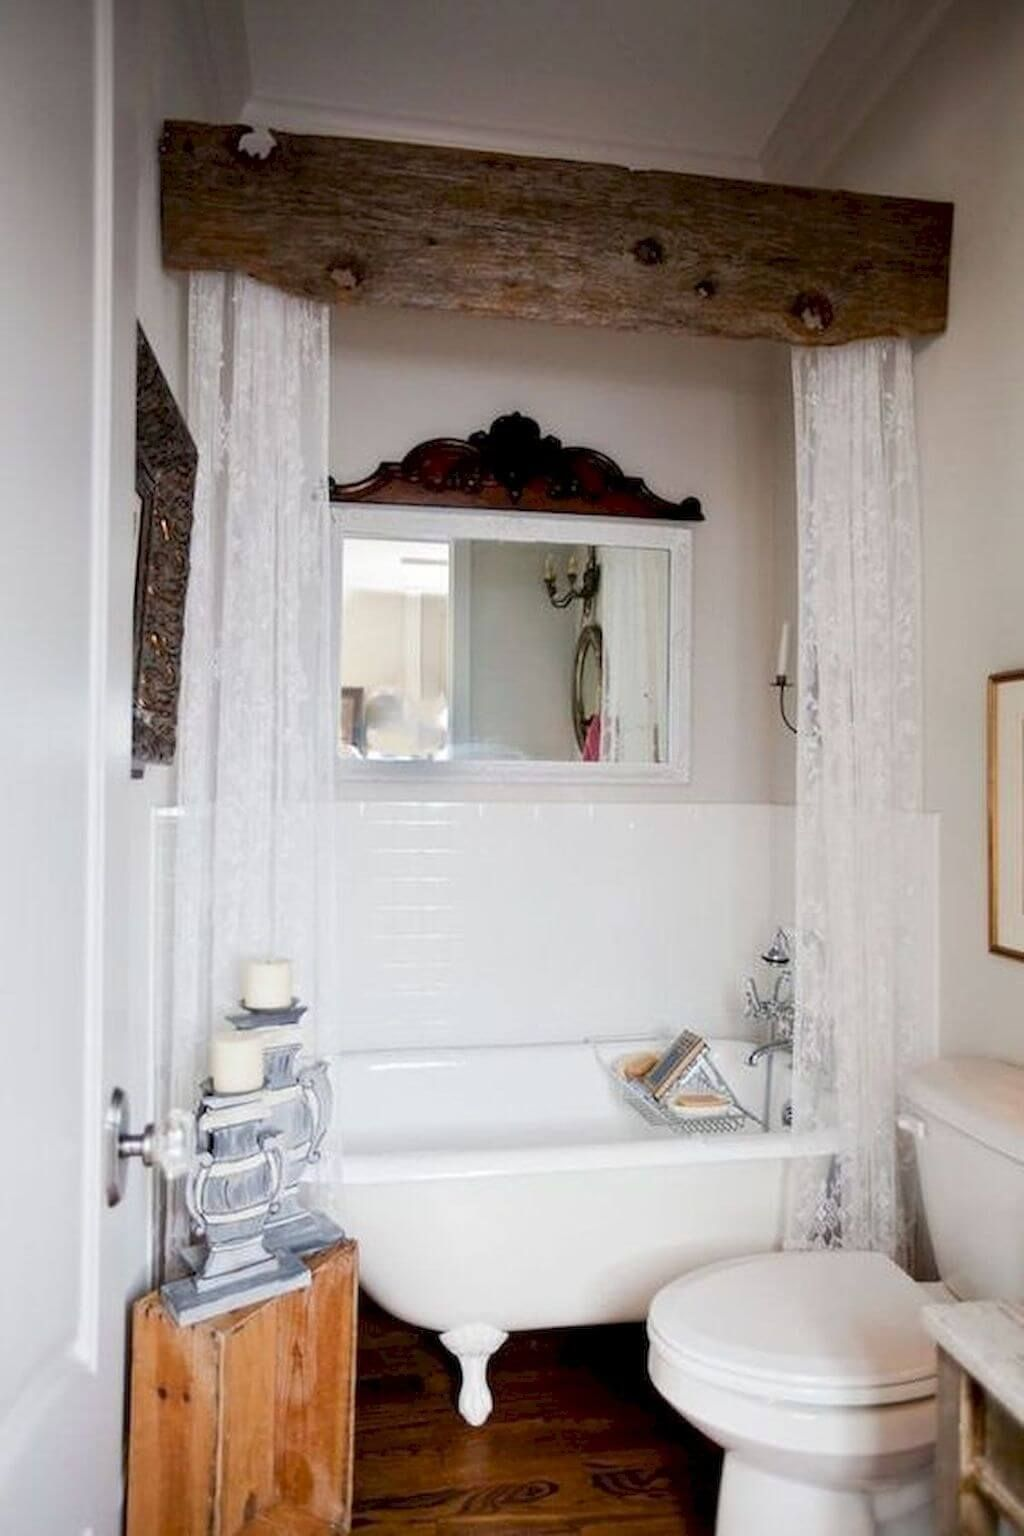 30 Wonderful Cottage Style Bathroom Ideas for a Charming and ...